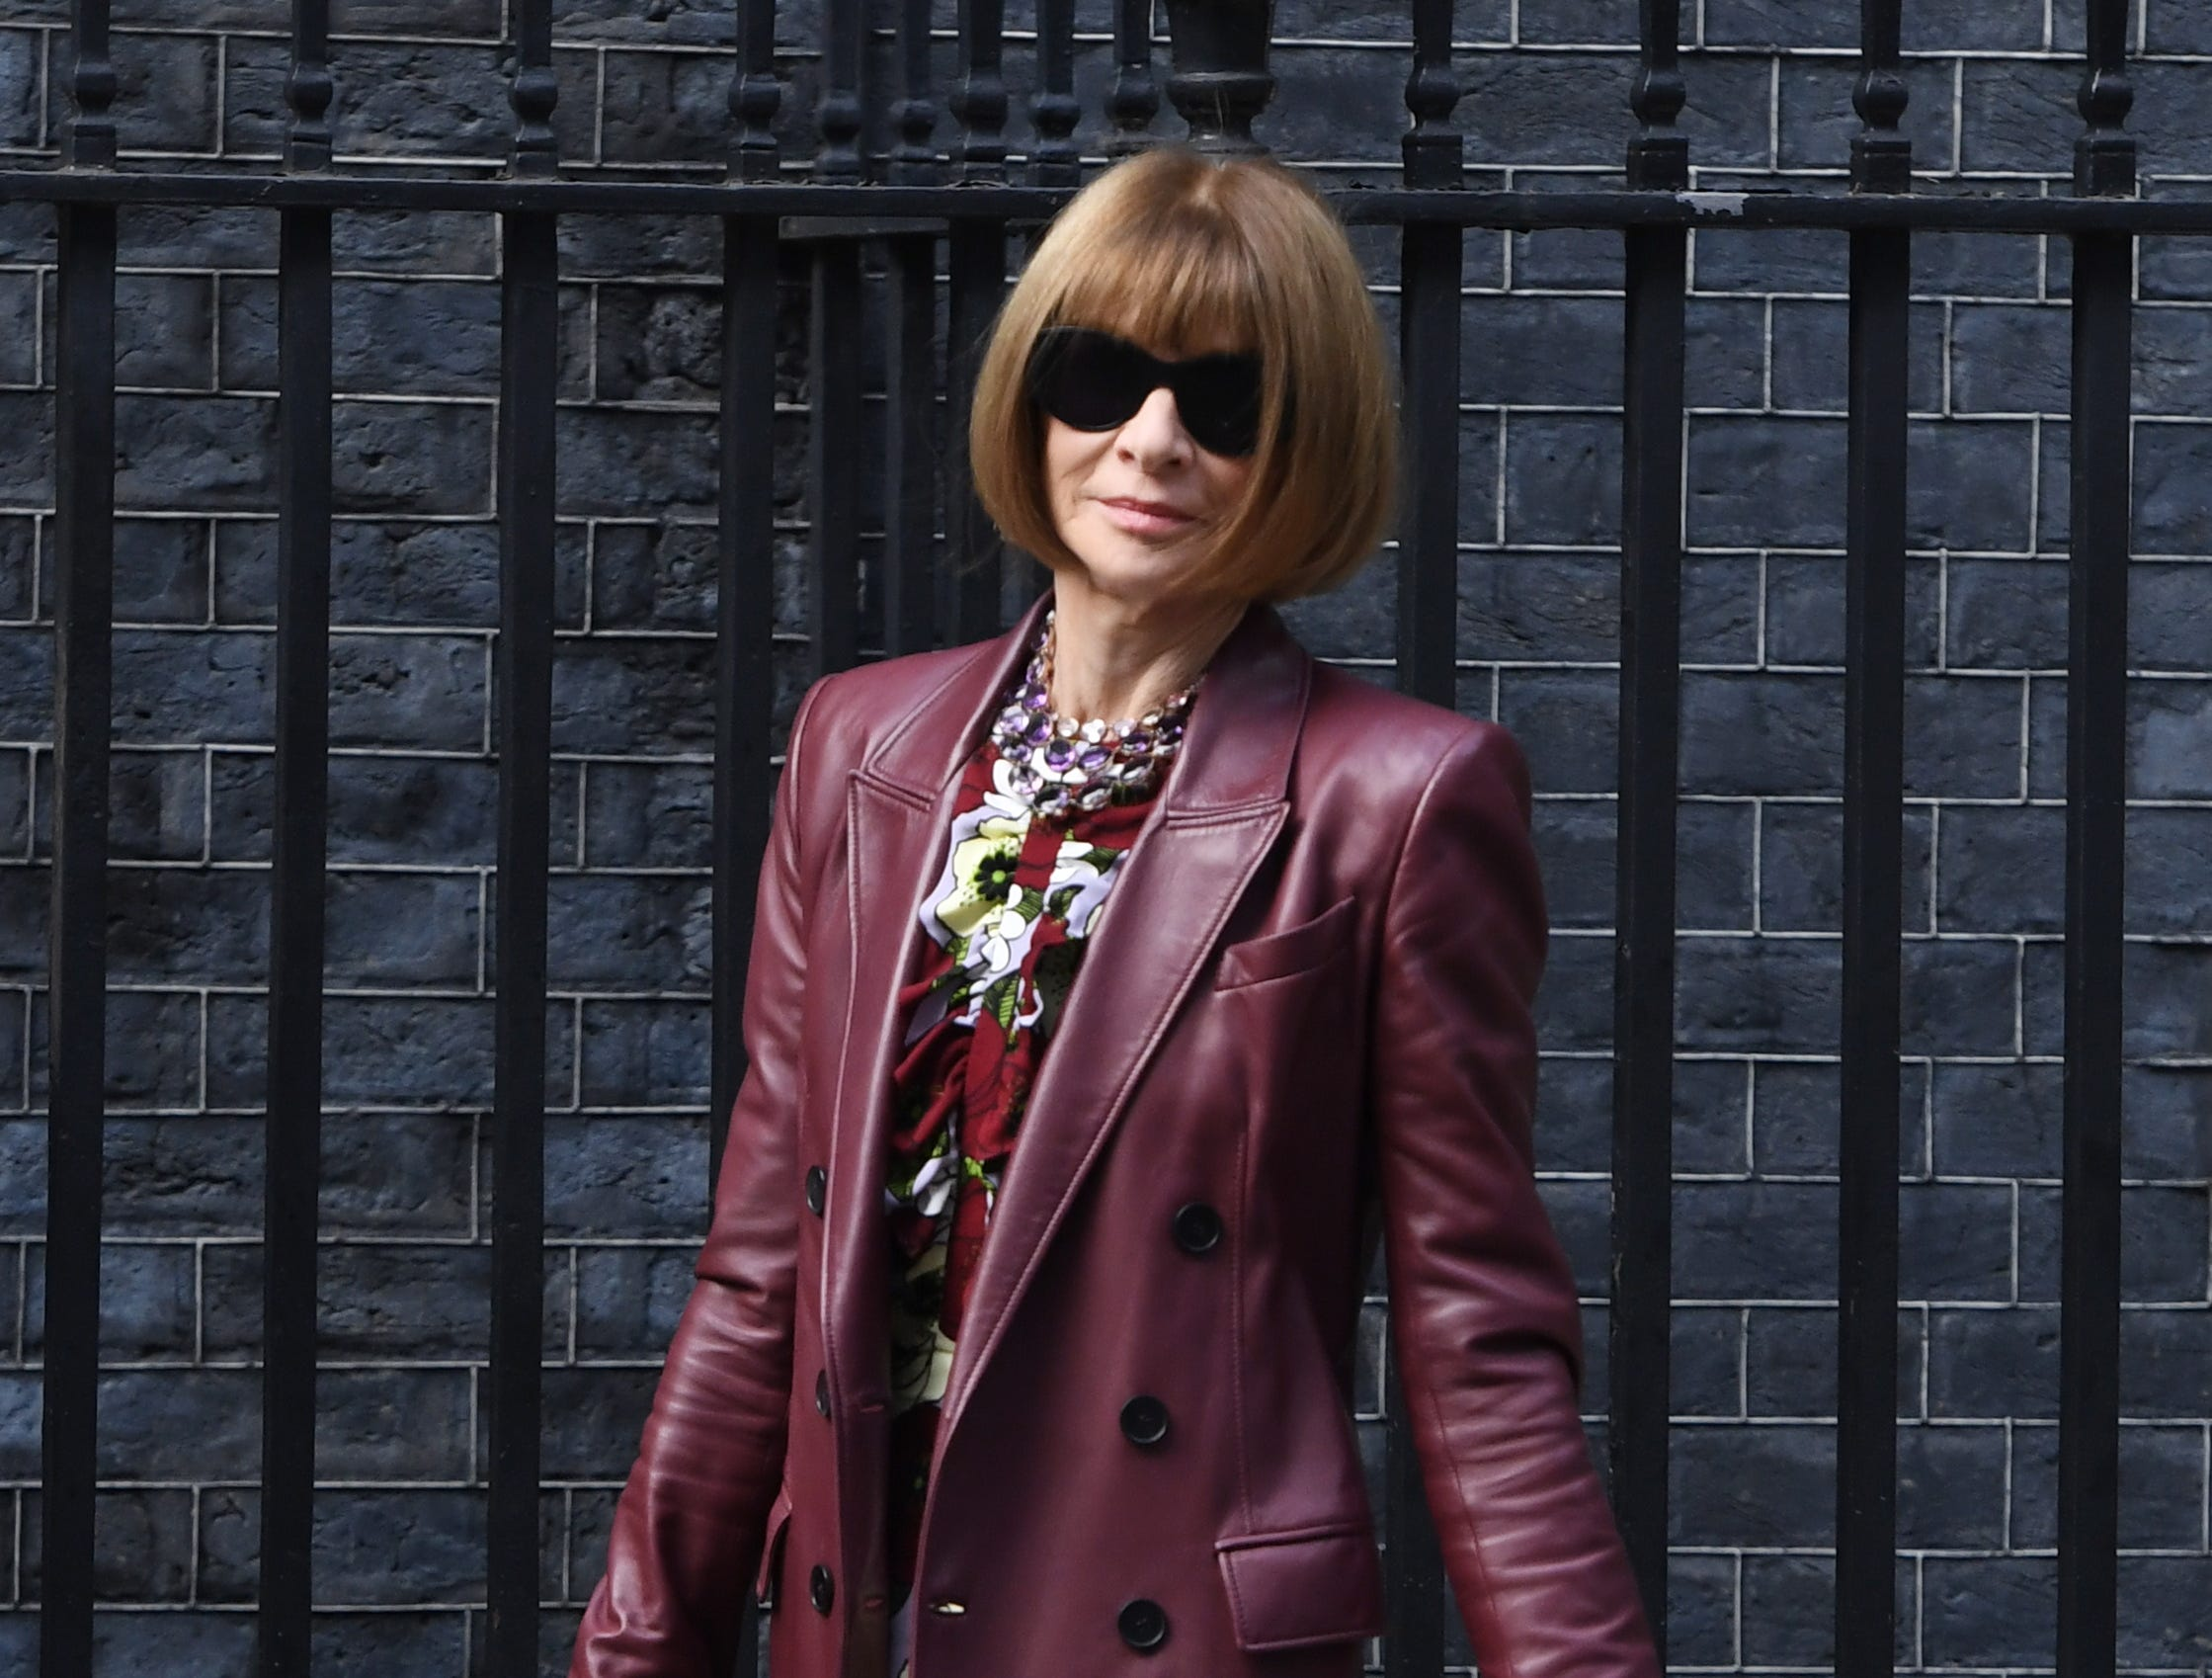 epa07030263 British-American journalist and editor-in-chief of US Vogue magazine Anna Wintour arrives to a reception hosted by Britain's Prime Minister in 10 Downing Street in London, Britain, 18 September 2018. The London Fashion Week featuring the Women's Spring-Summer 2018-2019 collections runs from 14 to 18 September.